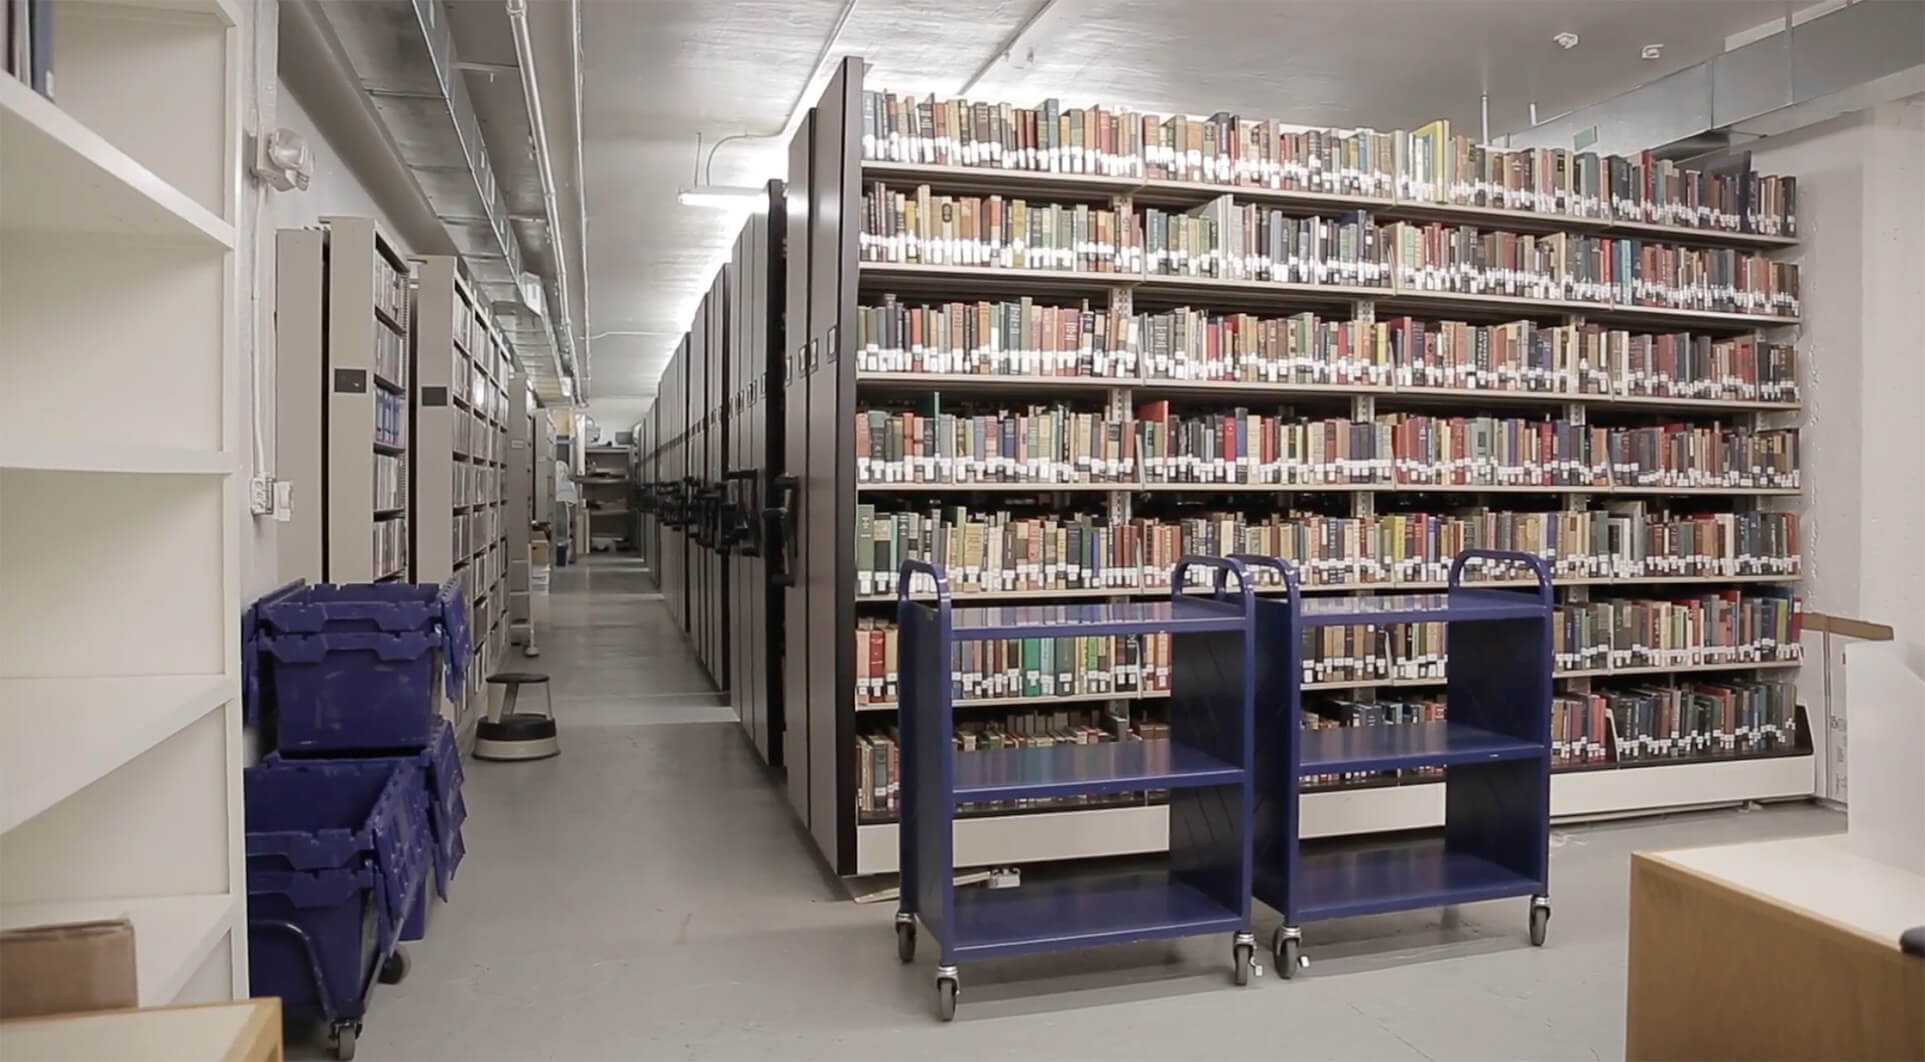 Library books storage on mechanical assist mobile storage system at Gettysburg College